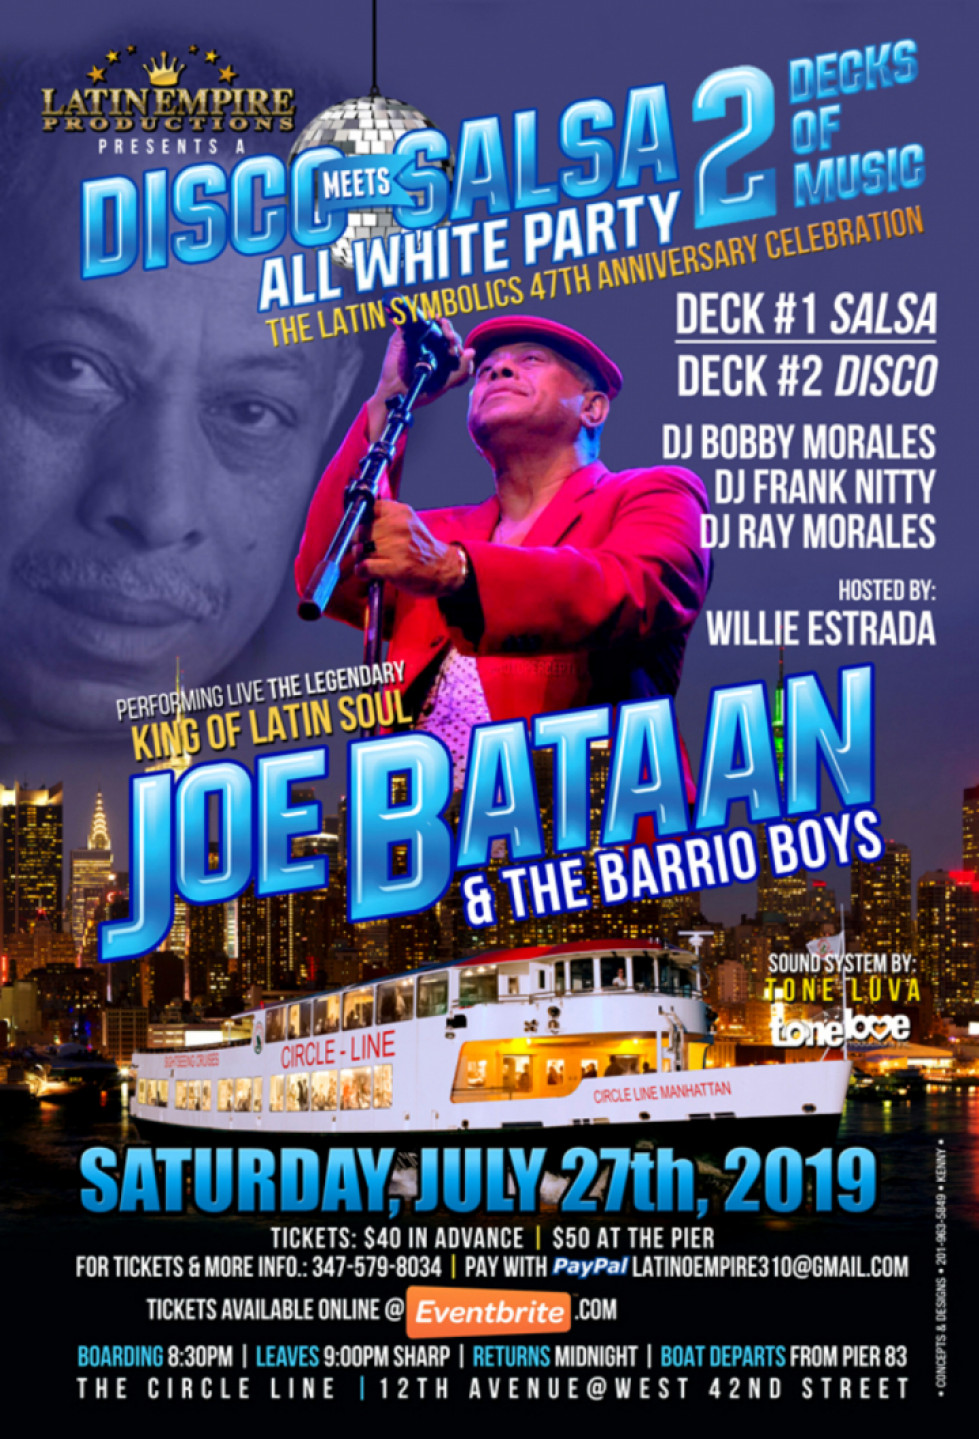 Latin Empire Presents Disco Meets Salsa 2 All White Party